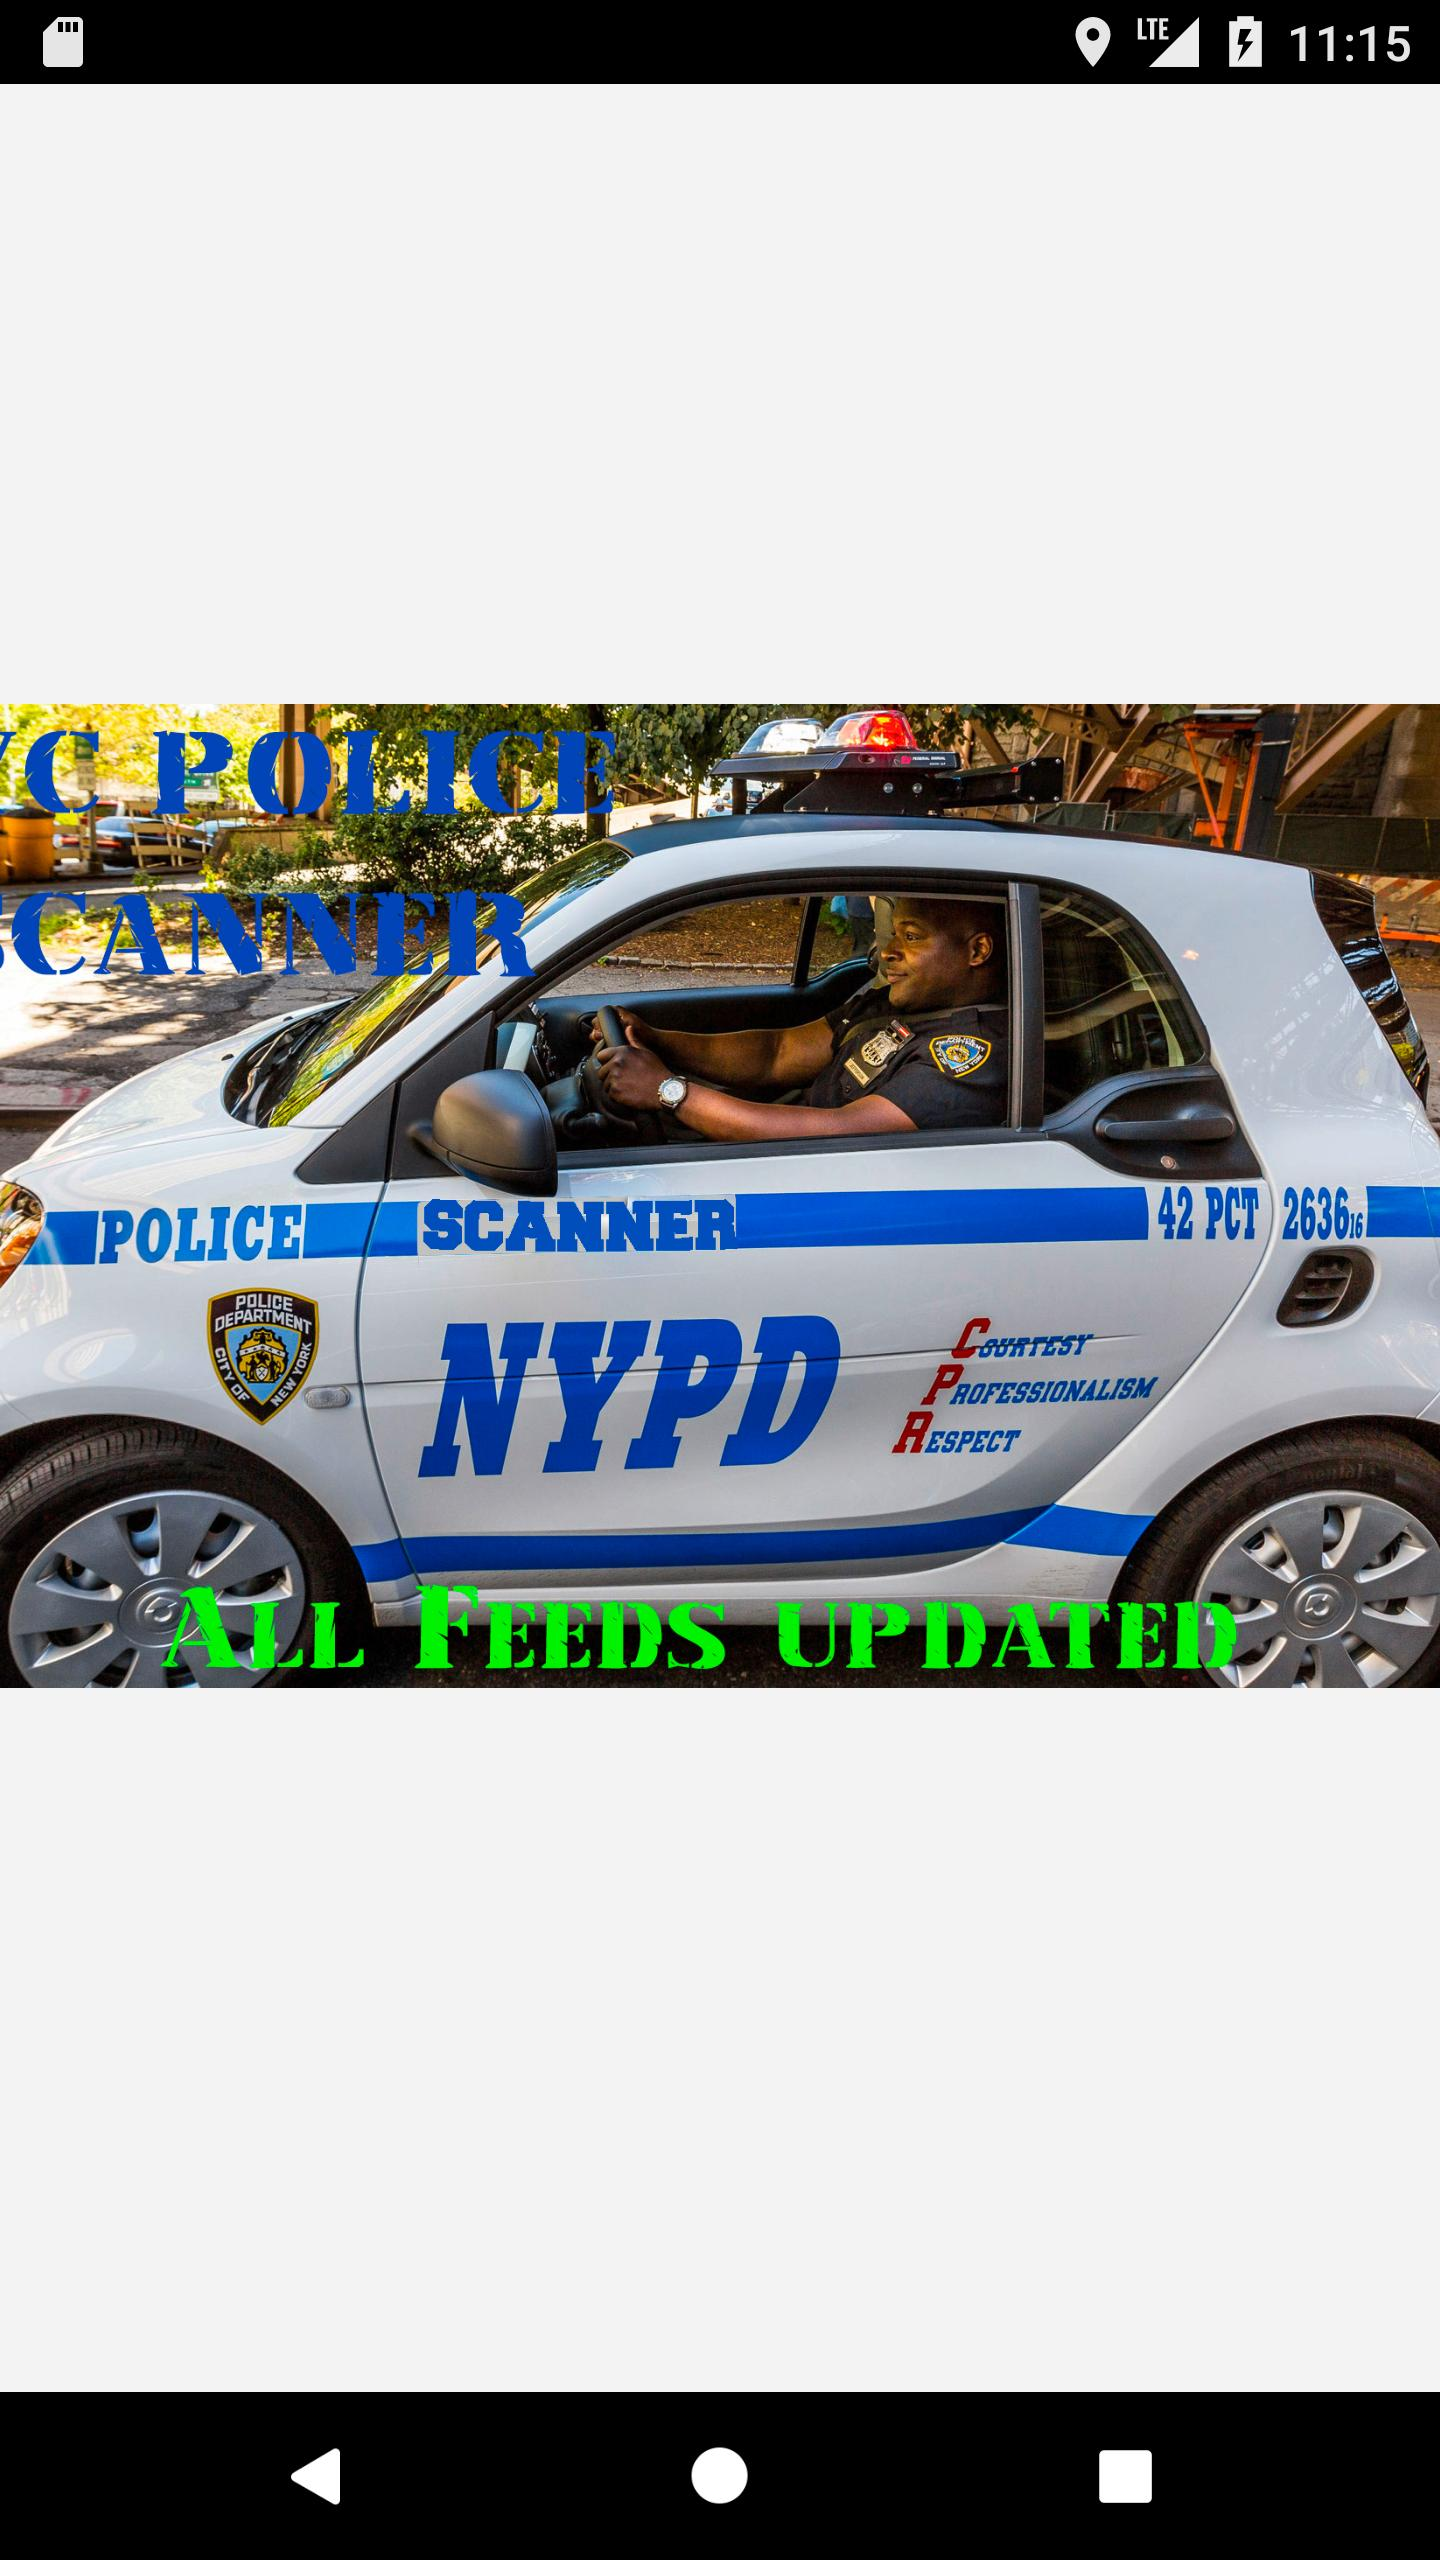 Scan New York City [Police Scanner +Web Radio] for Android - APK